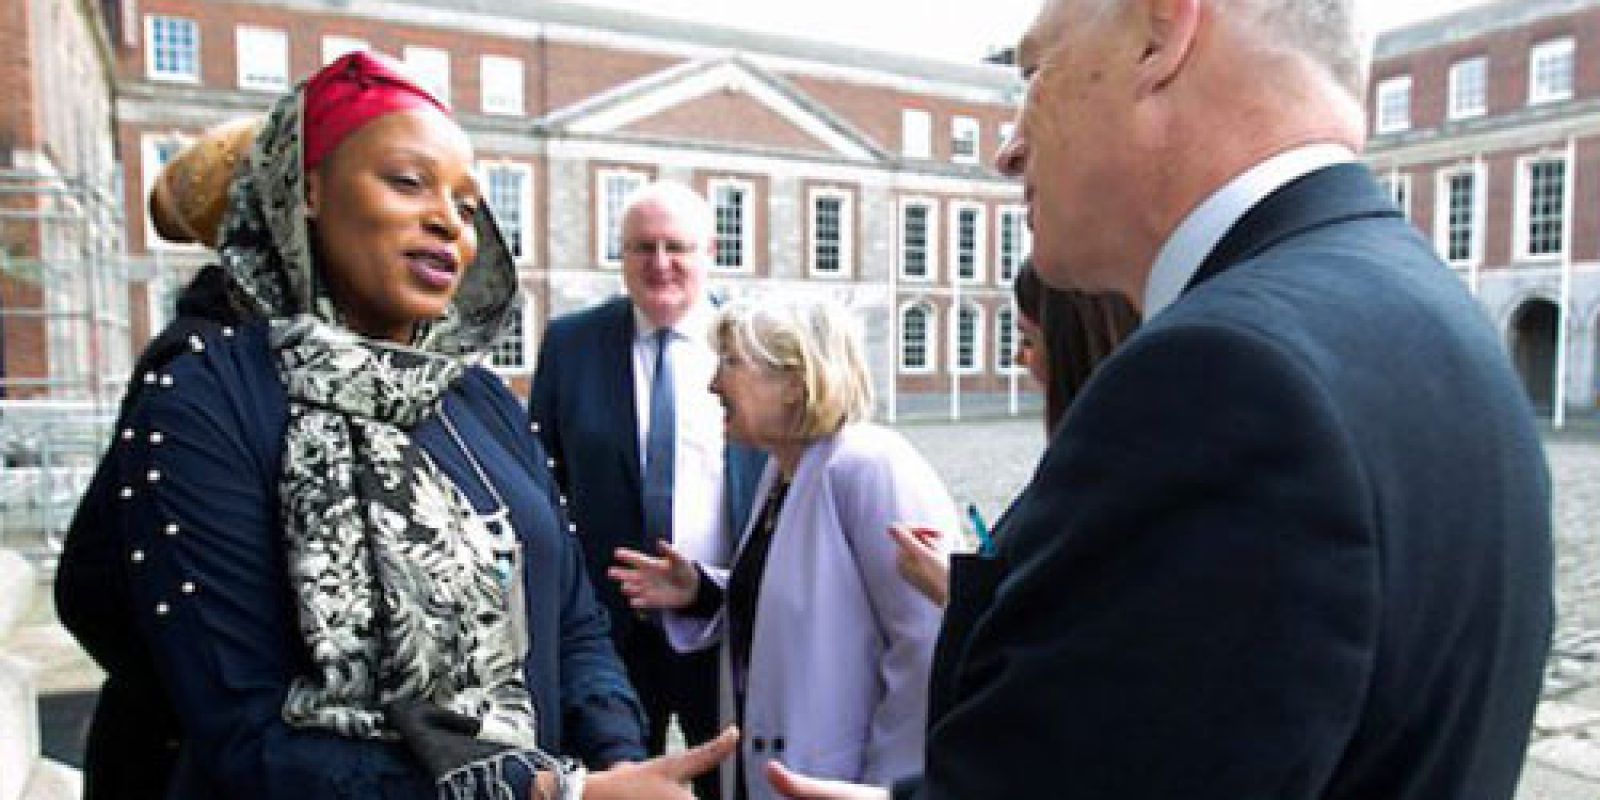 Fatima Mofokeng, participant of JRS Ireland' Fáilte Project, and David Stanton, Minister of State for Equality, Immigration and Integration in Ireland.